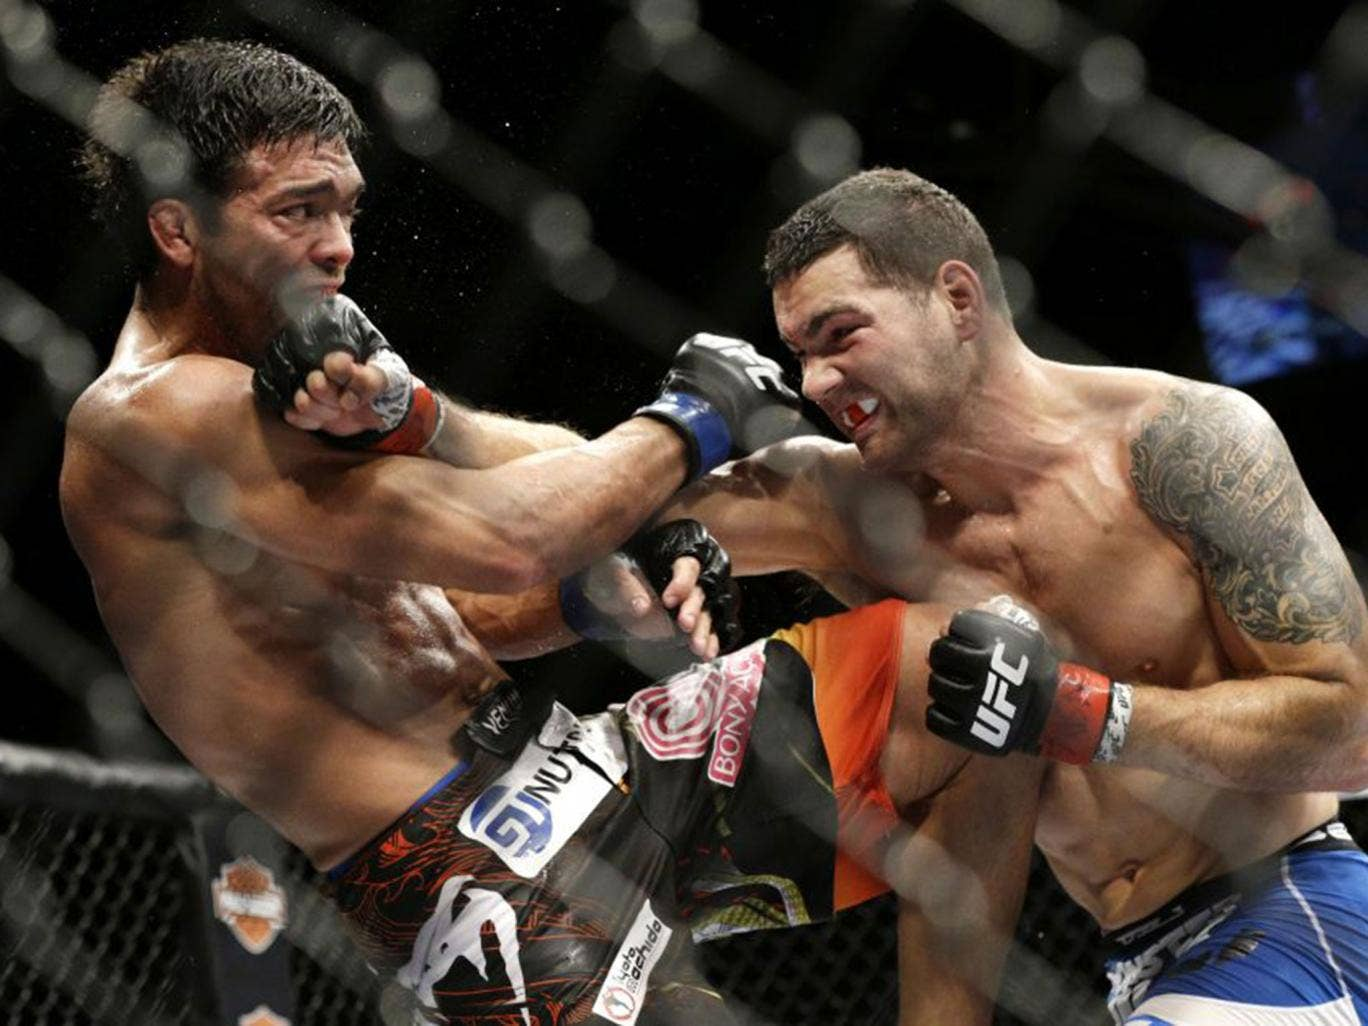 Chris Weidman (right) hits Lyoto Machida during their mixed martial arts middleweight title bout at UFC 175 Saturday